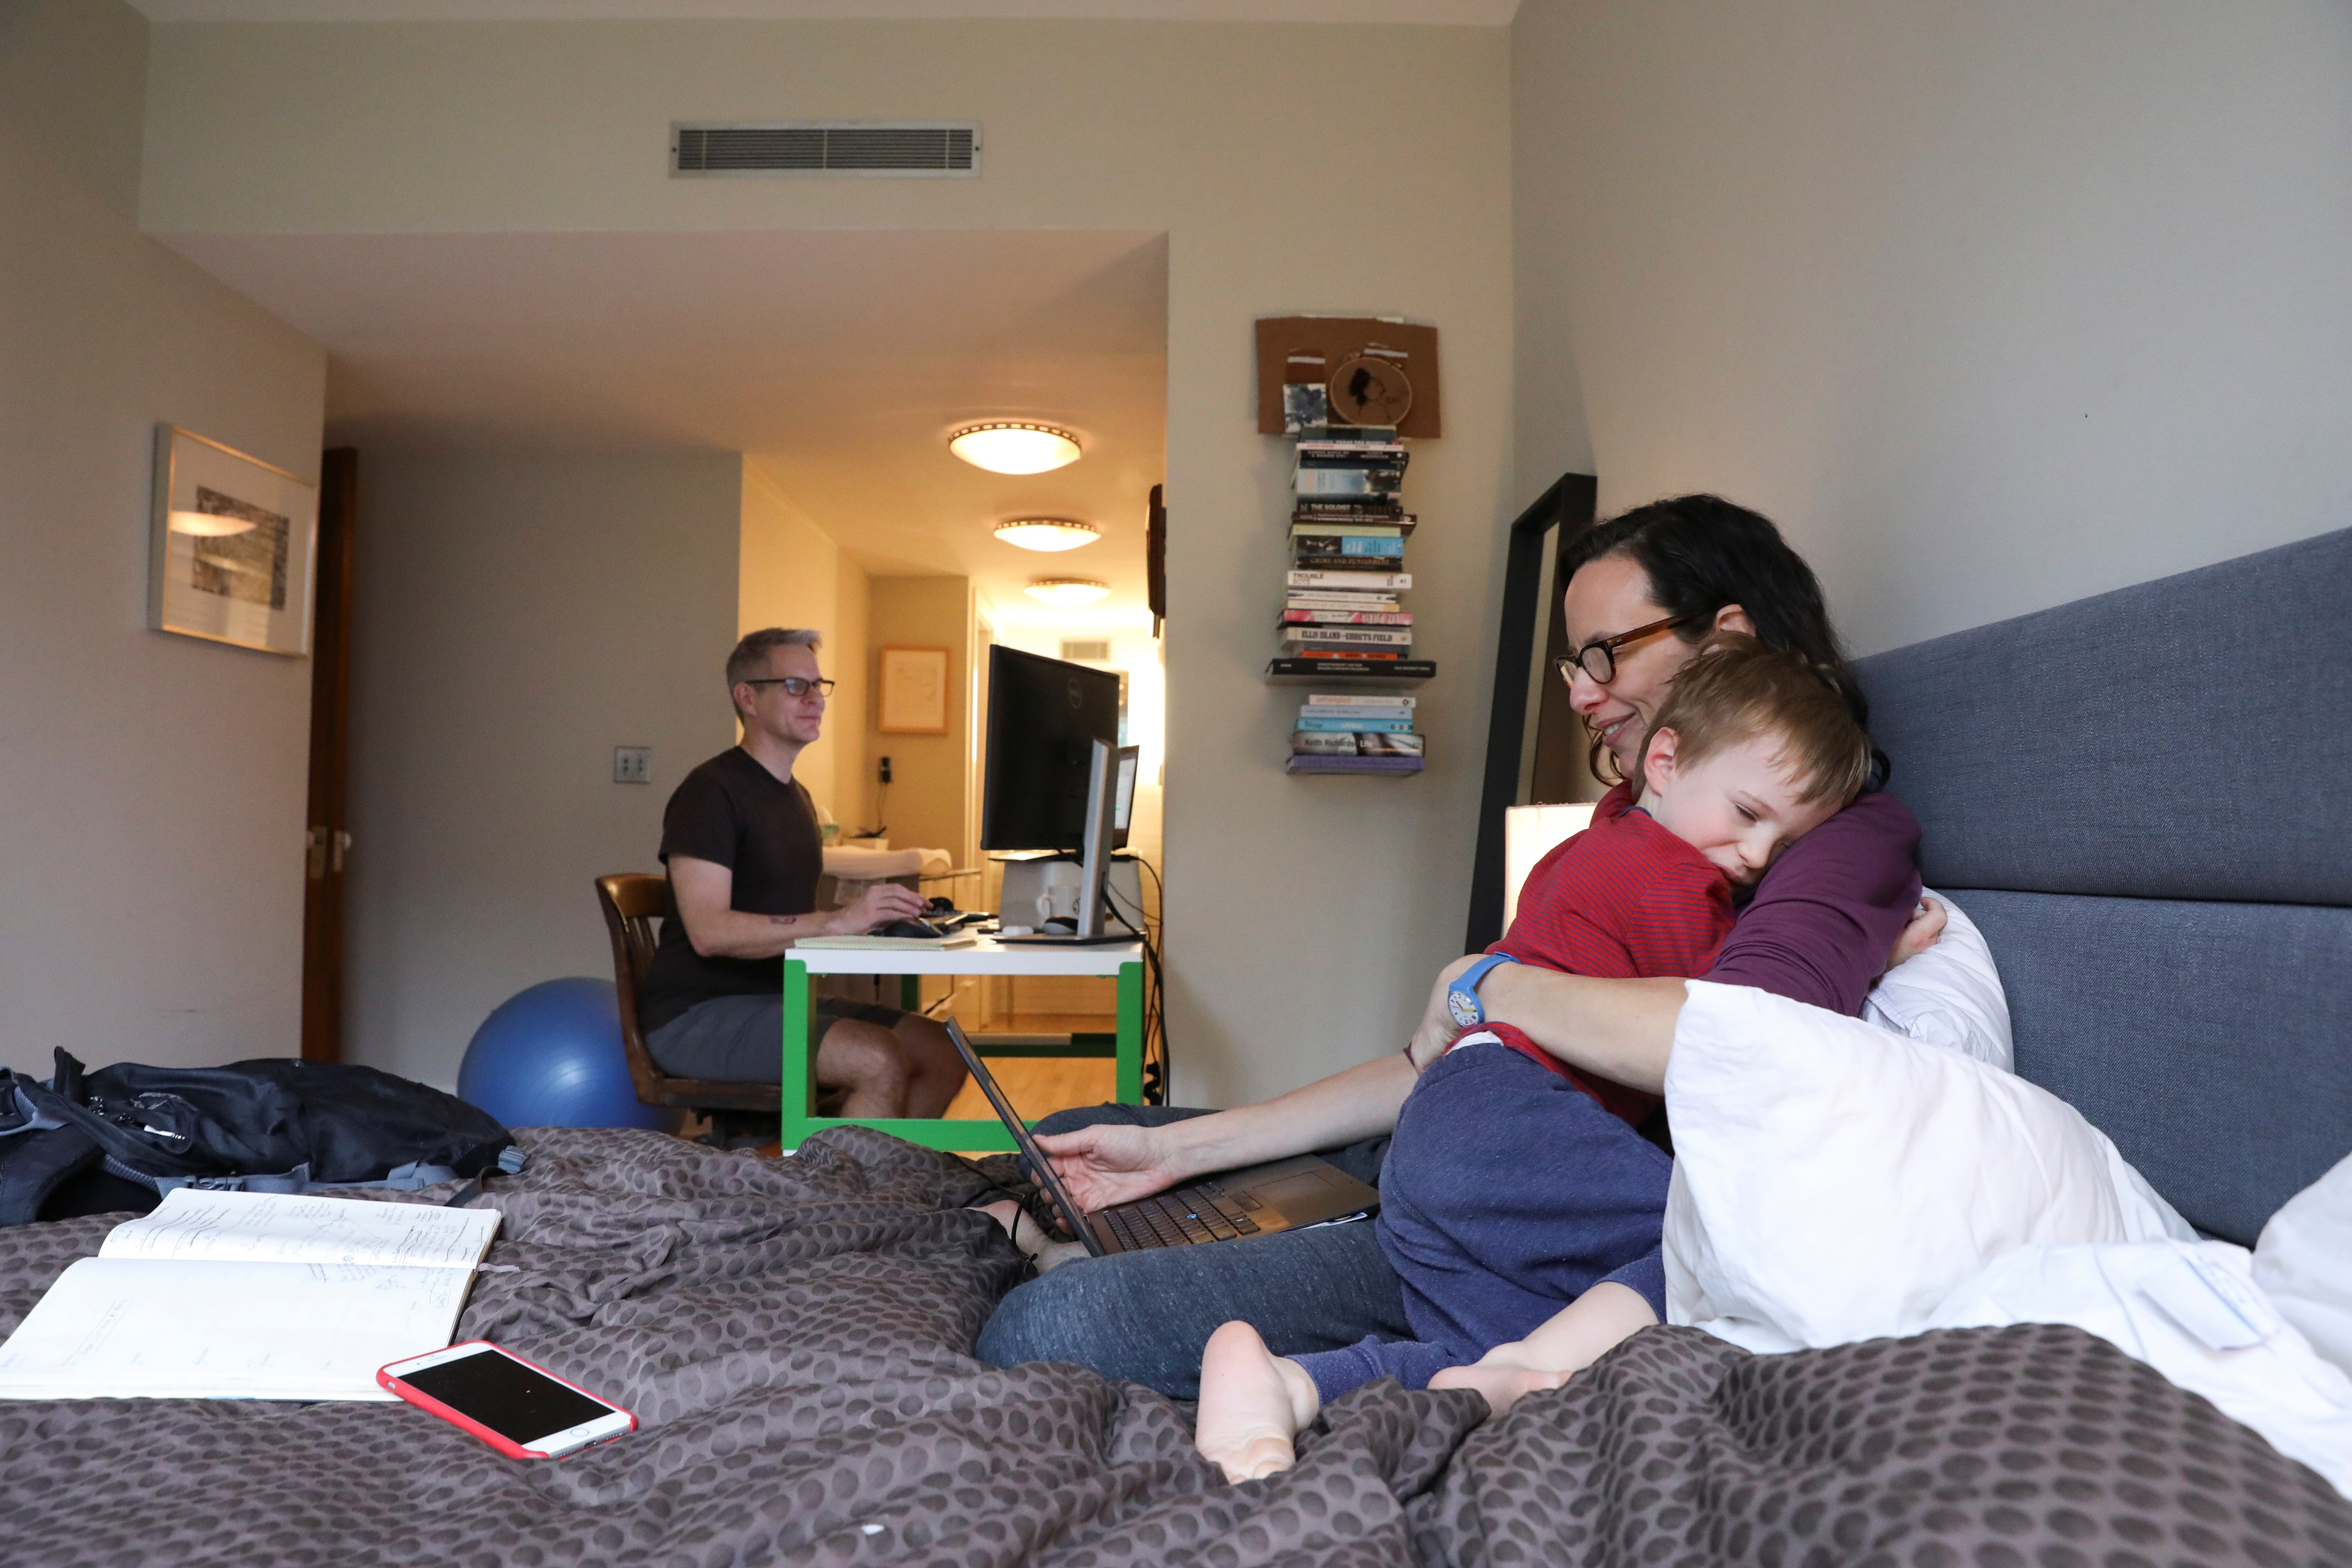 Naomi Hassebroek holds her son Felix while working with her husband Doug Hassebroek at their home, after New York State Governor Andrew Cuomo signed an executive order closing New York public schools statewide due to public health concerns over the rapid spread of coronavirus disease (COVID-19) in Brooklyn, New York, U.S., March 19, 2020. REUTERS/Caitlin Ochs